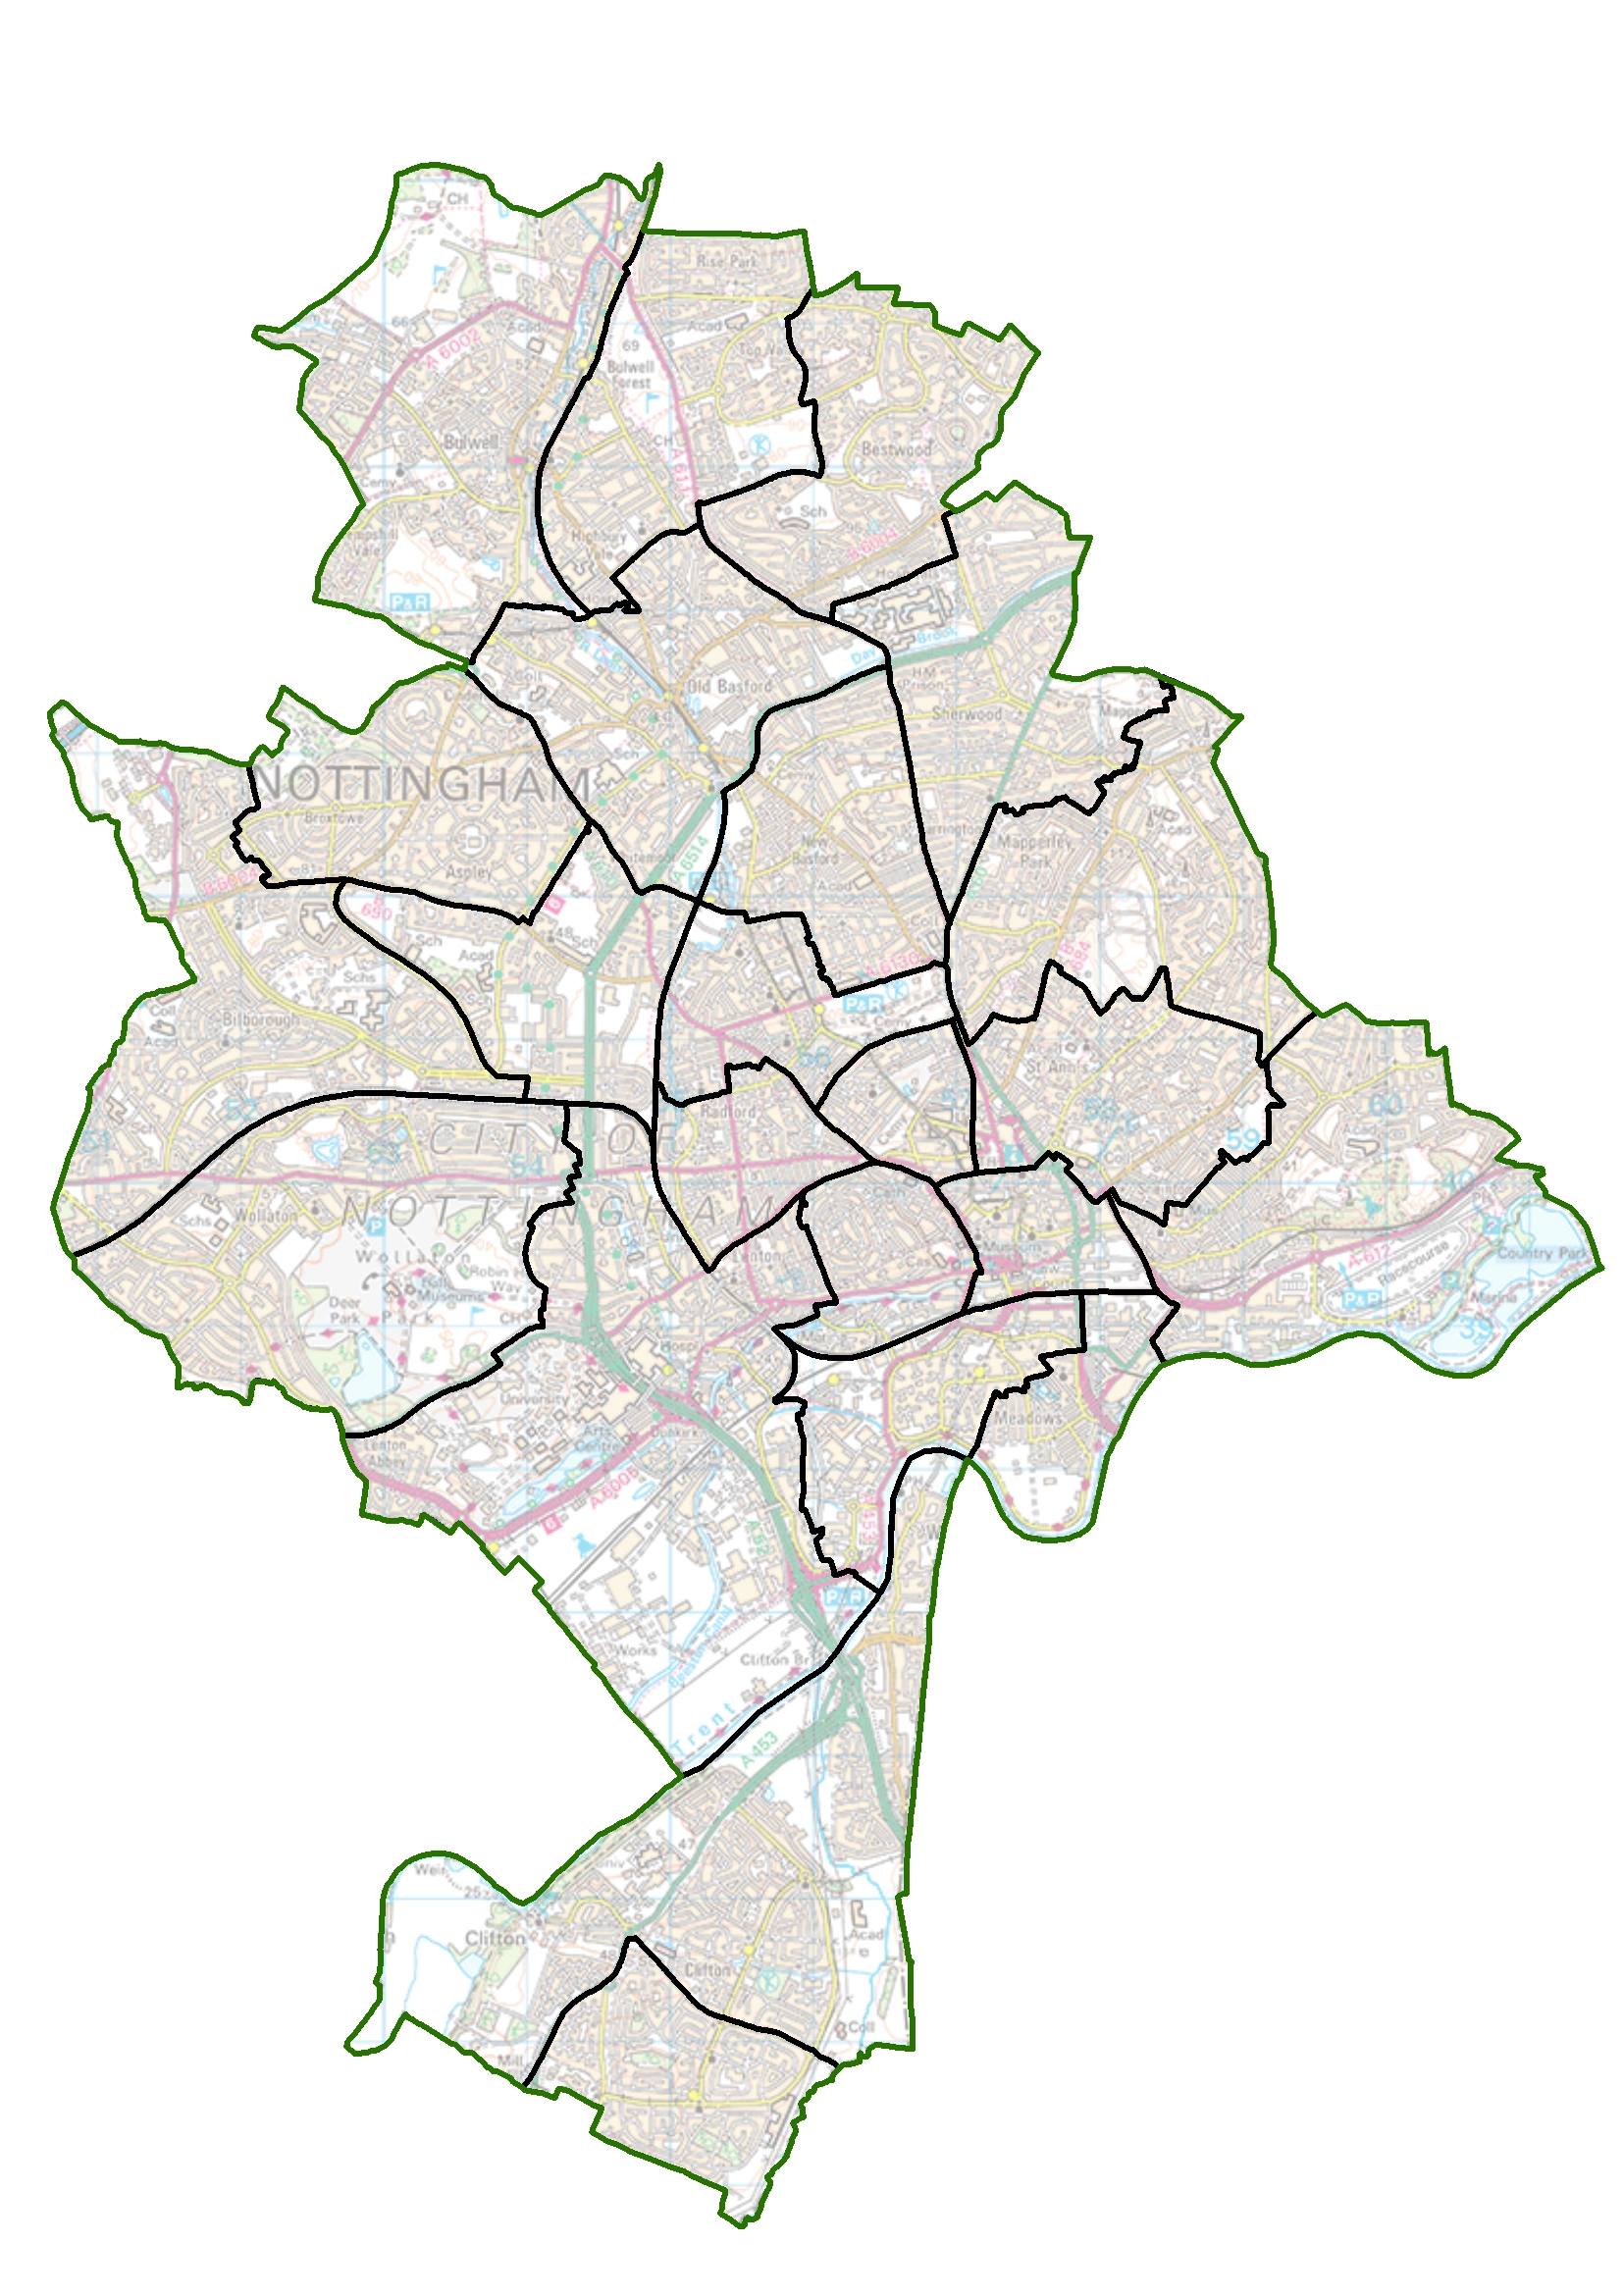 Nottingham Residents Have Your Say On New Ward Boundaries Lgbce Site